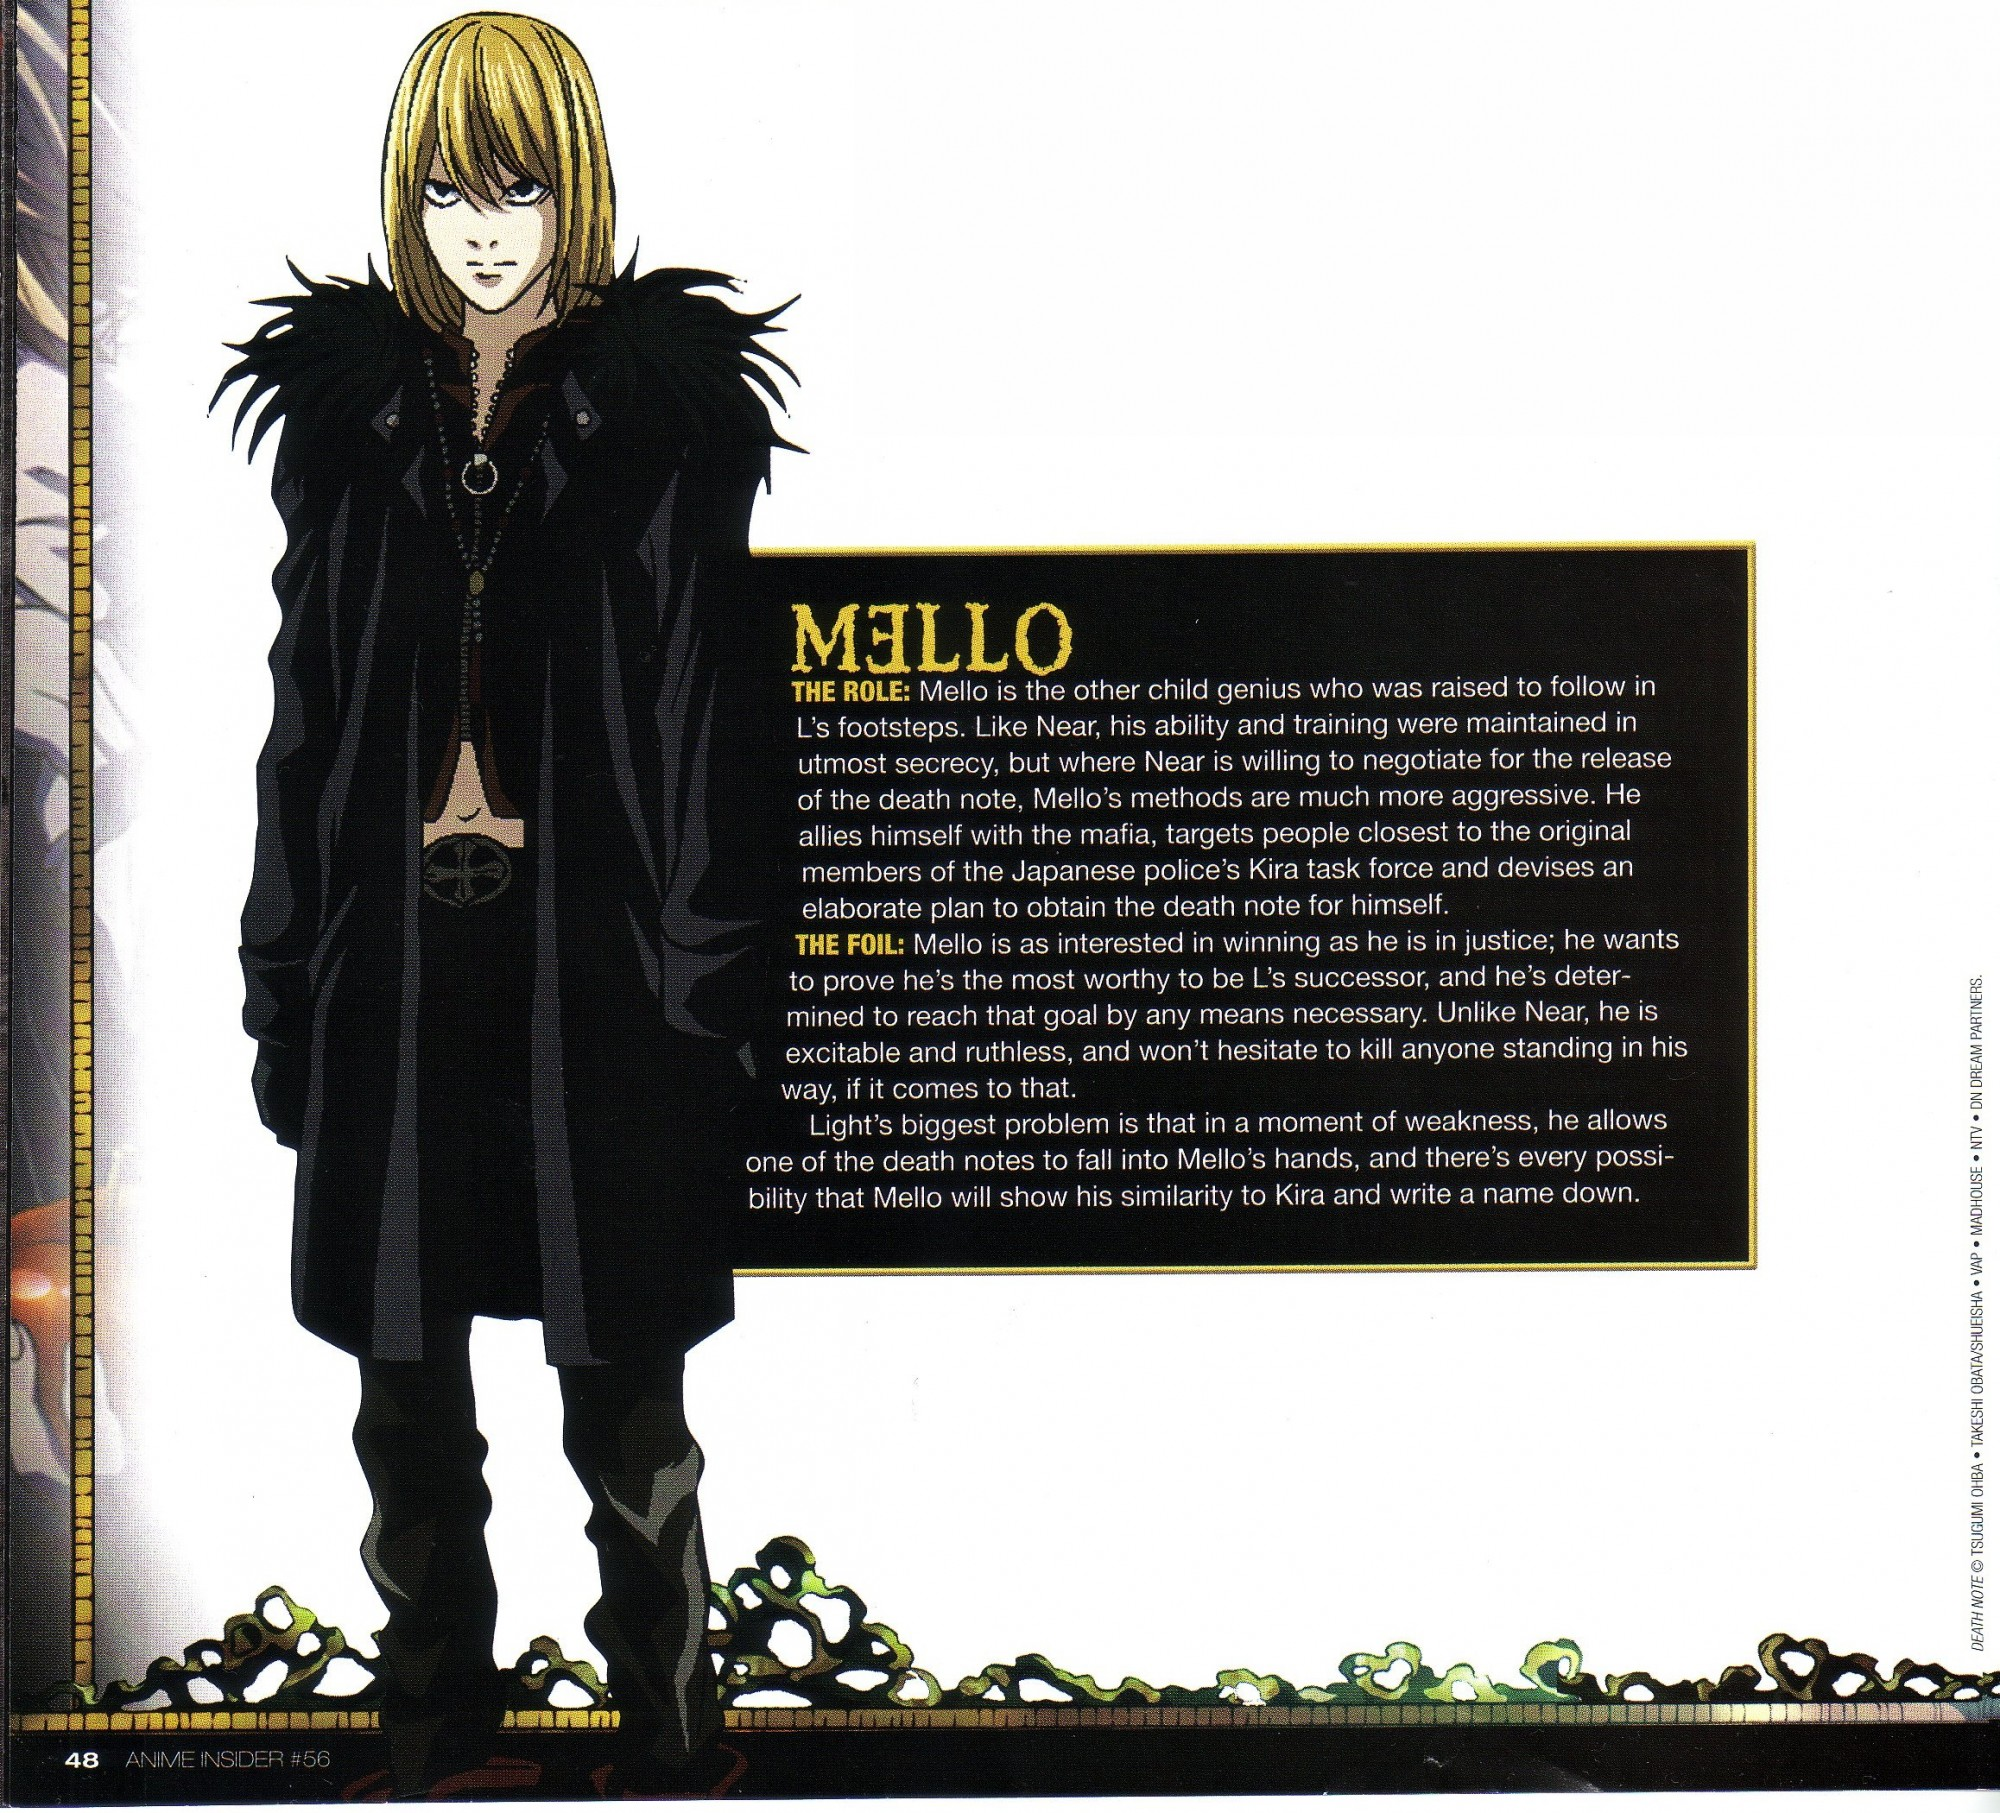 Mello - DEATH NOTE - Image #1672 - Zerochan Anime Image Board